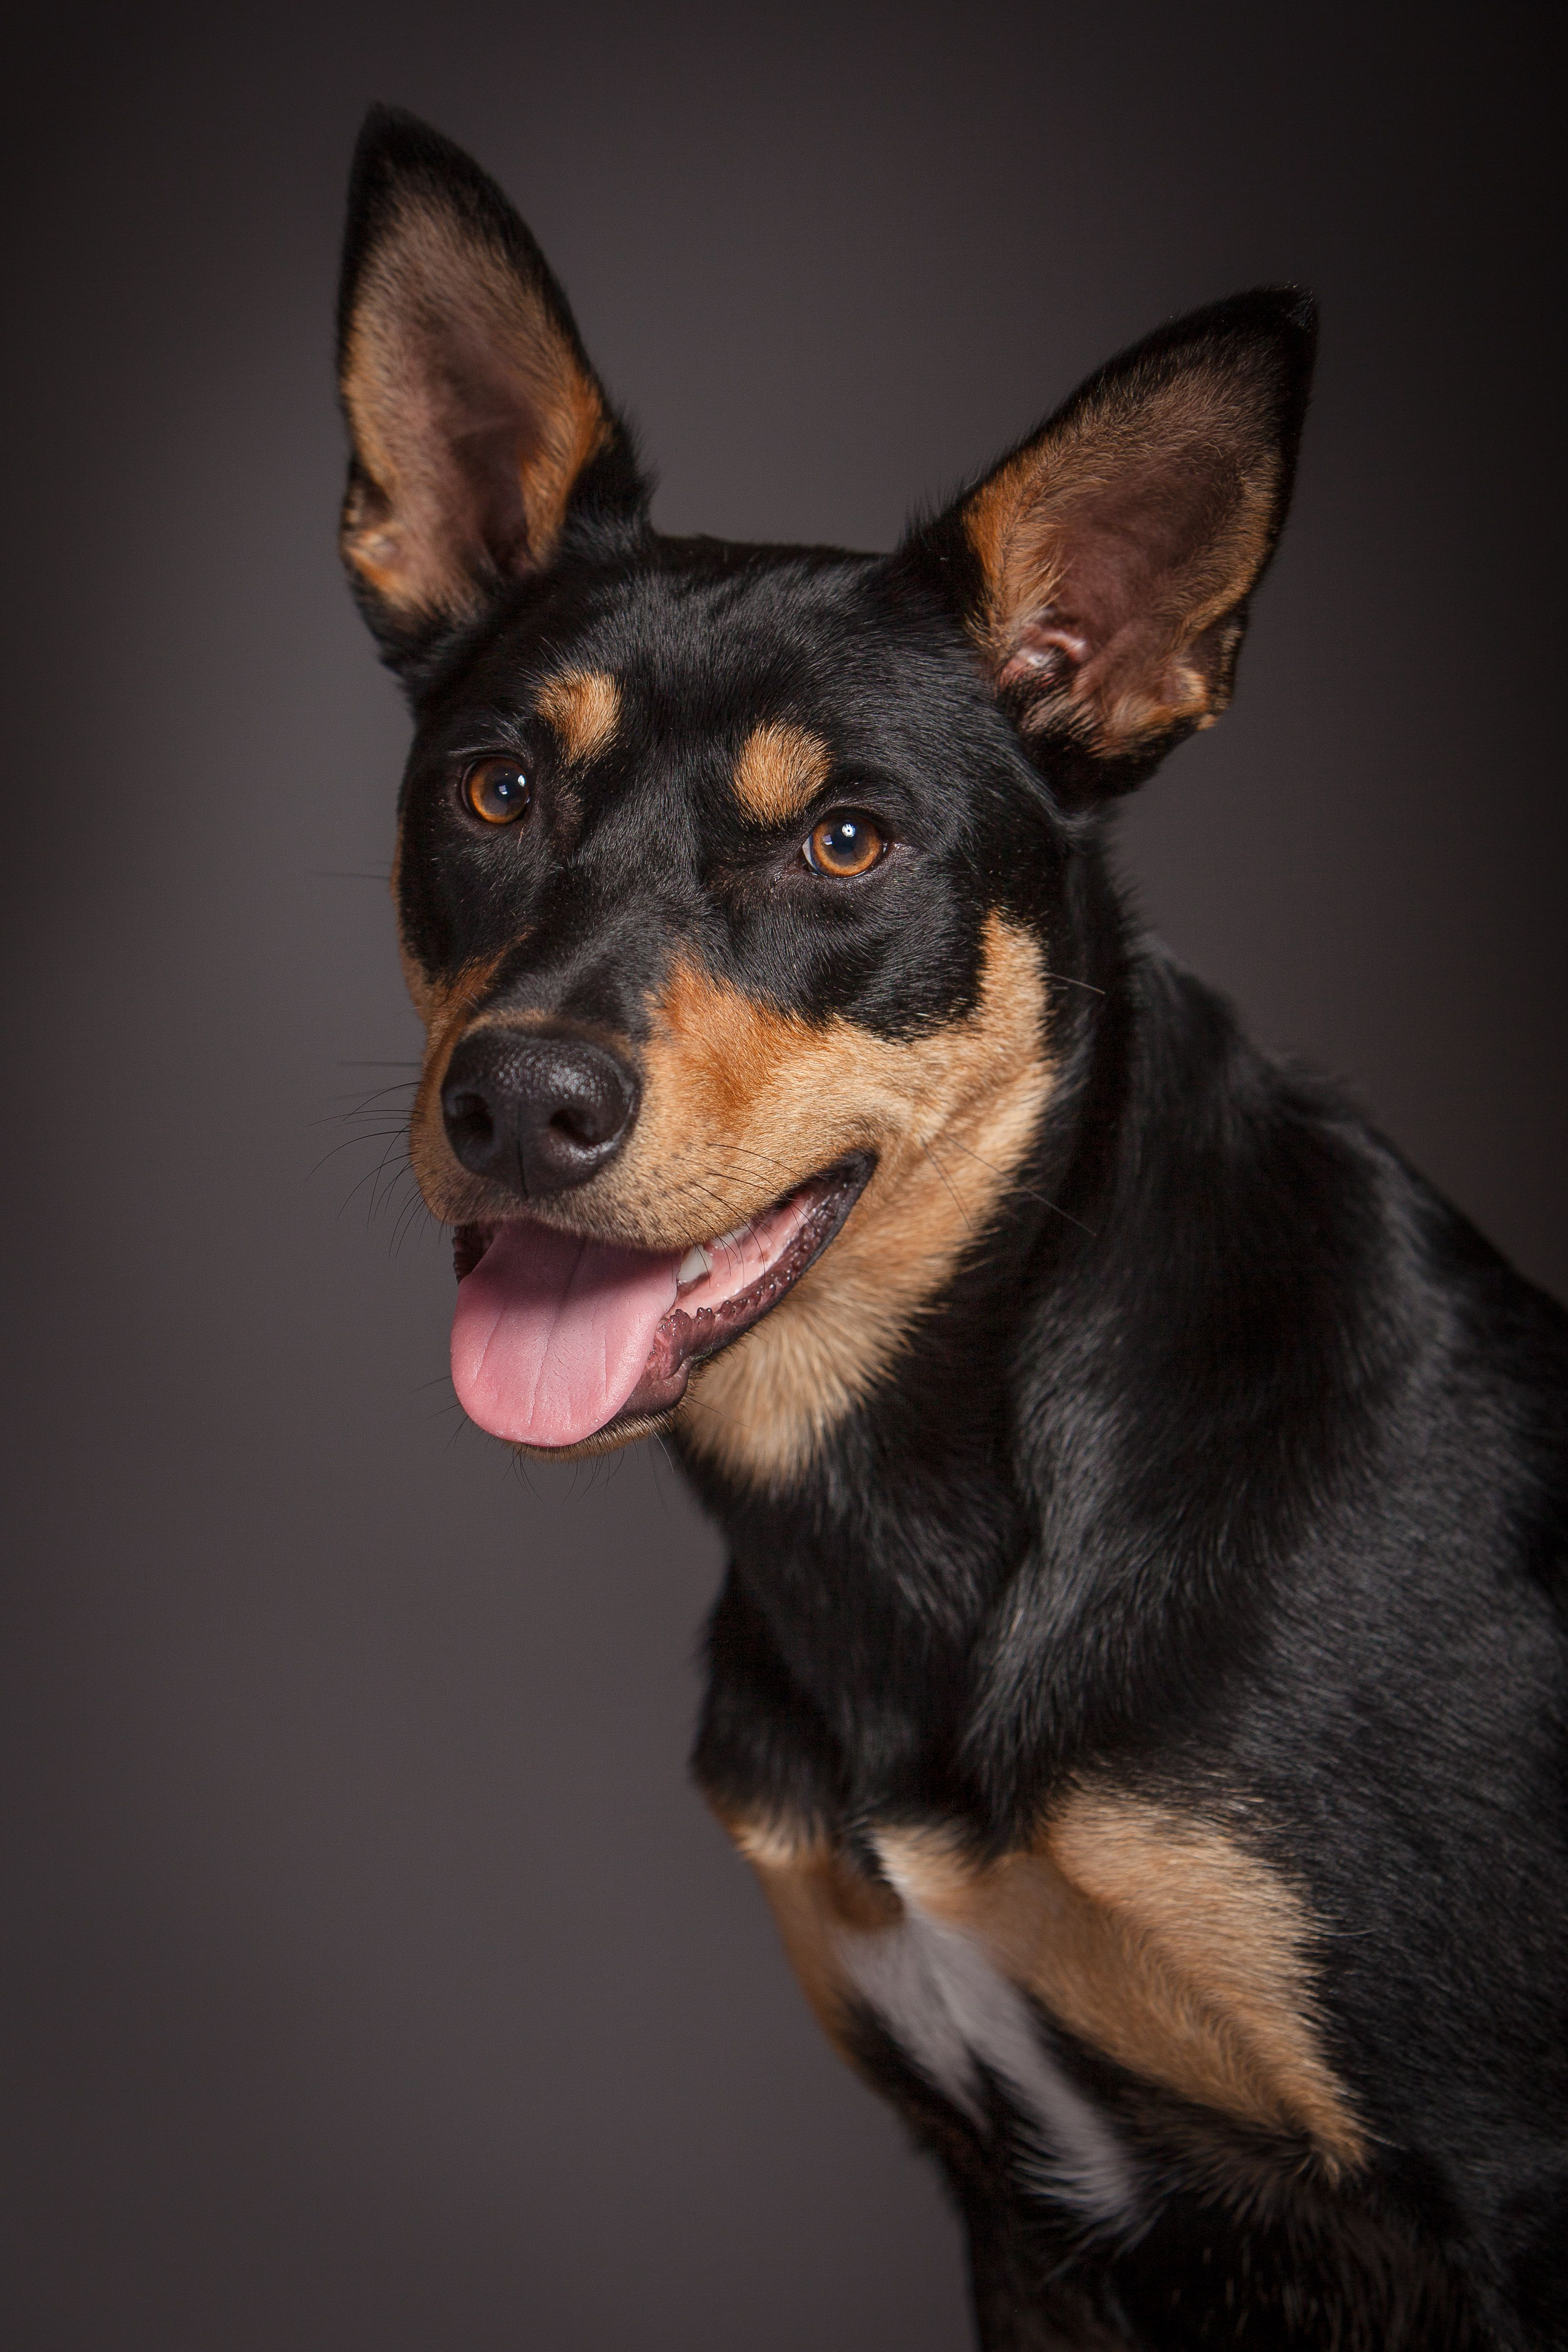 Portrait Of An Australian Kelpie Dog Called Ted Order An Oil Painting Of Your Pet Today At Petsinportrait Com Australian Kelpie Dog Dog Breeds Aussie Dogs